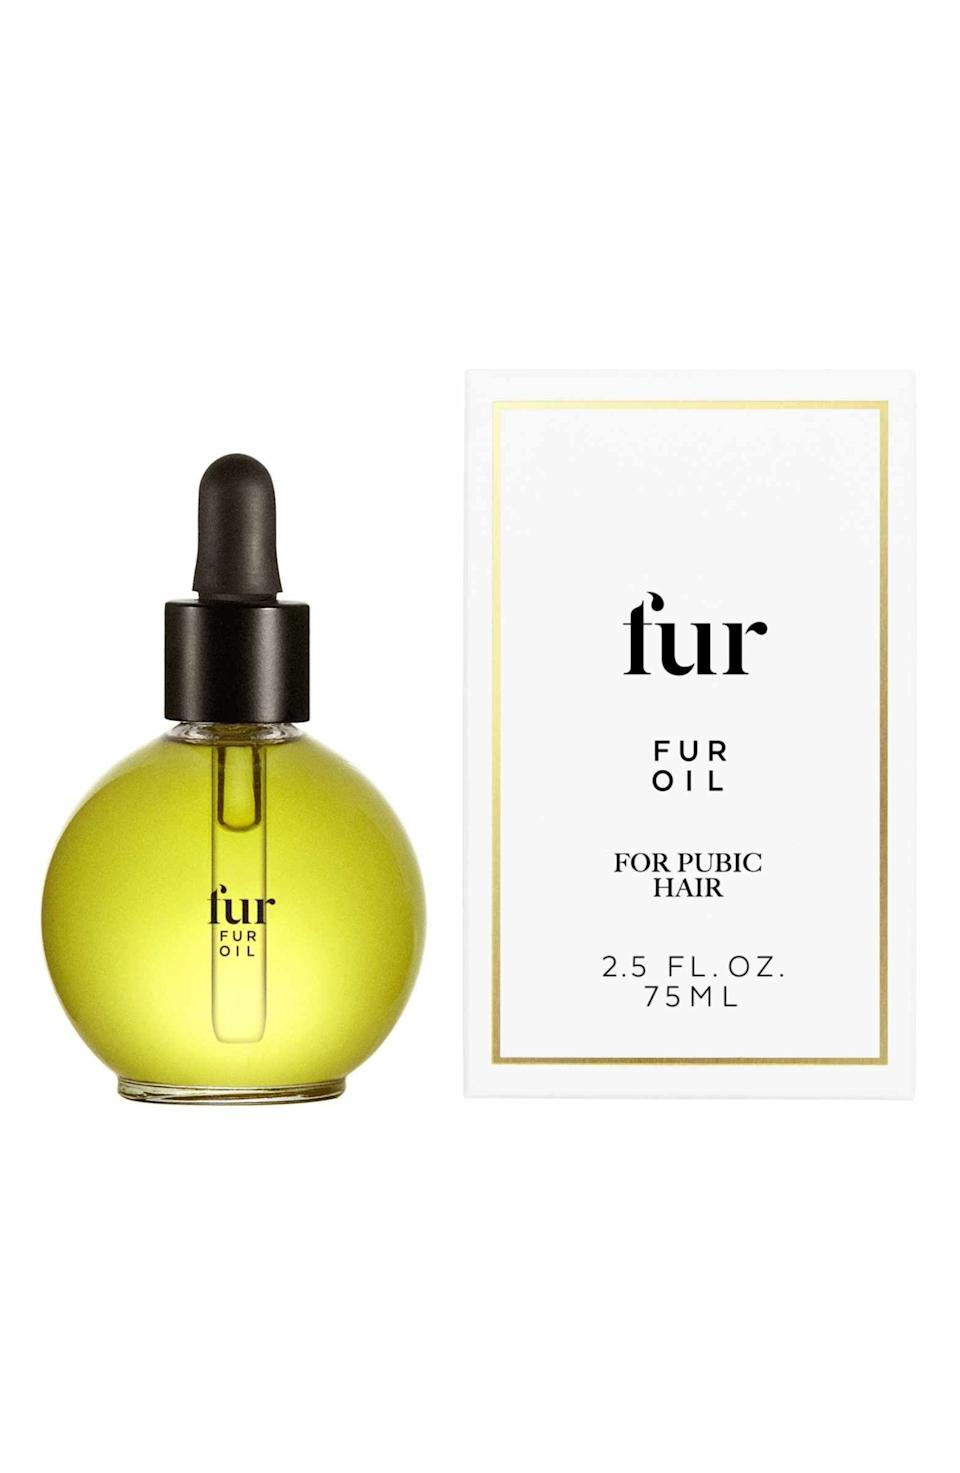 """<h3><strong>Fur Skincare</strong> Fur Oil</h3> <p>For some people, plant extracts and <a href=""""https://www.refinery29.com/en-us/are-essential-oils-good-for-skin"""" rel=""""nofollow noopener"""" target=""""_blank"""" data-ylk=""""slk:essential oils"""" class=""""link rapid-noclick-resp"""">essential oils</a> can cause allergic reactions, says Dr. Mudgil. But for us, the anti-inflammatory and anti-microbial jojoba, grapeseed, clary sage, and tea-tree oils in this blend proved to be soothing to skin. (As always, <a href=""""https://www.refinery29.com/en-us/reddit-skincare-addiction-acronyms-terms"""" rel=""""nofollow noopener"""" target=""""_blank"""" data-ylk=""""slk:YMMV"""" class=""""link rapid-noclick-resp"""">YMMV</a>.)</p> <br> <br> <strong>Fur Skincare</strong> Fur Oil, $46, available at <a href=""""https://shop.nordstrom.com/s/fur-skincare-fur-oil/4865248"""" rel=""""nofollow noopener"""" target=""""_blank"""" data-ylk=""""slk:Nordstrom"""" class=""""link rapid-noclick-resp"""">Nordstrom</a>"""